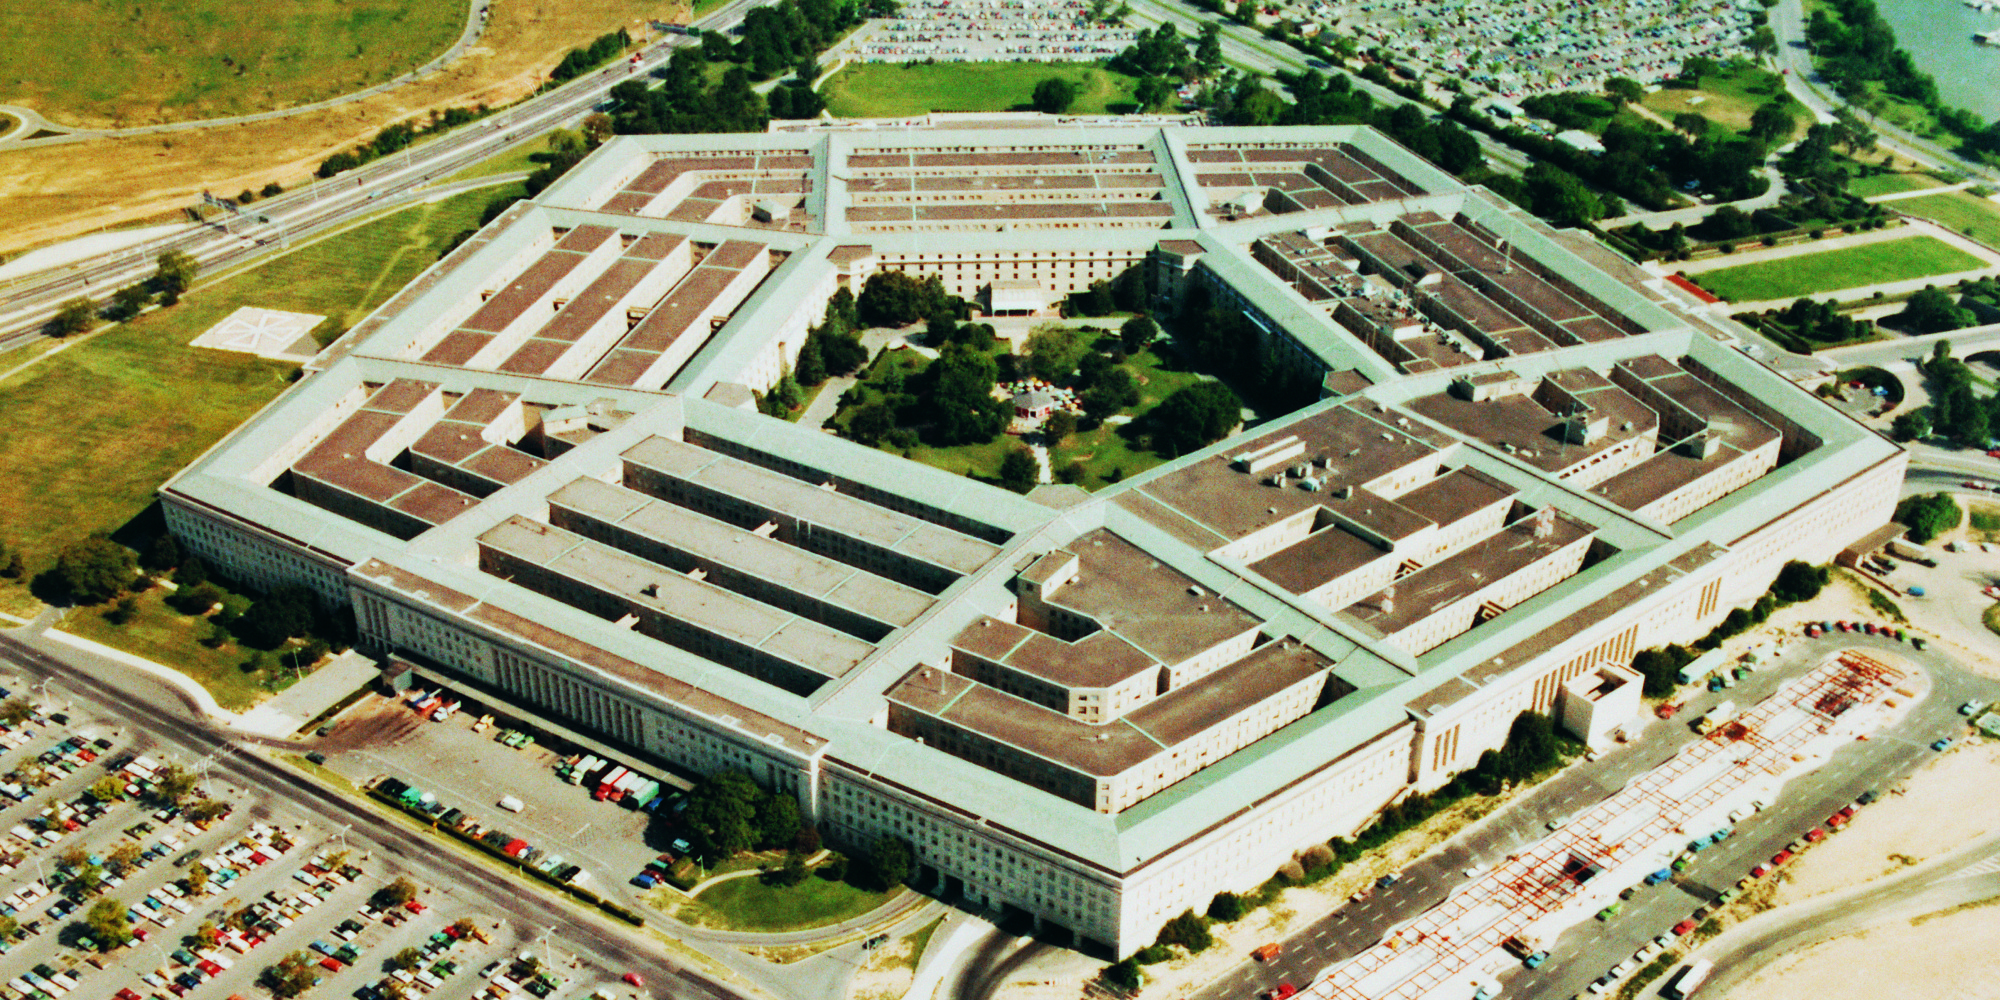 o-THE-PENTAGON-facebook.jpg&f=1&nofb=1